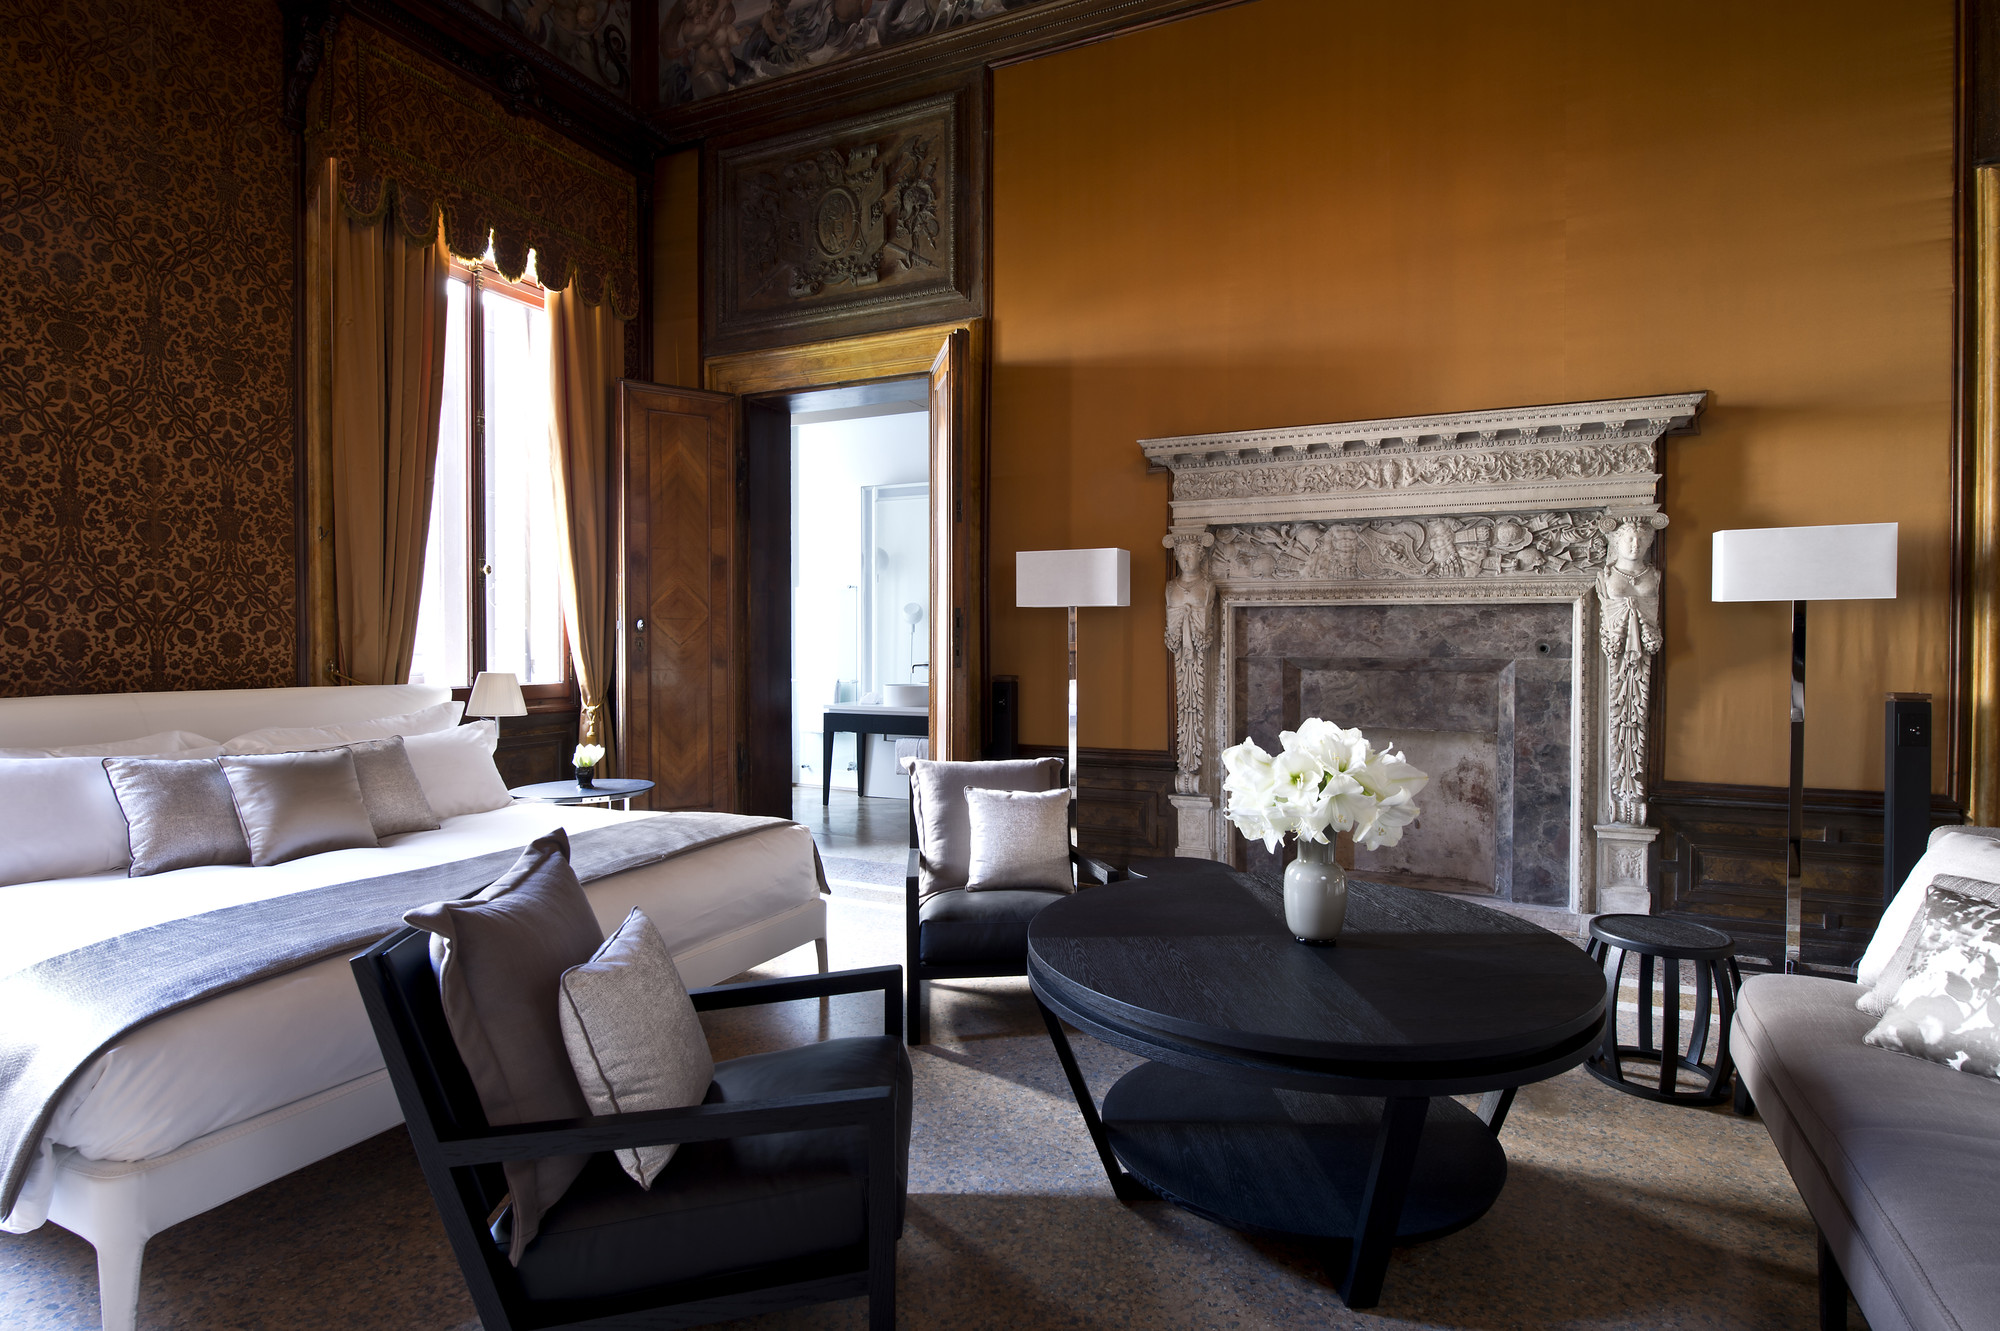 Best new hotels that opened in 2013 the luxury travel expert for Design hotel venise